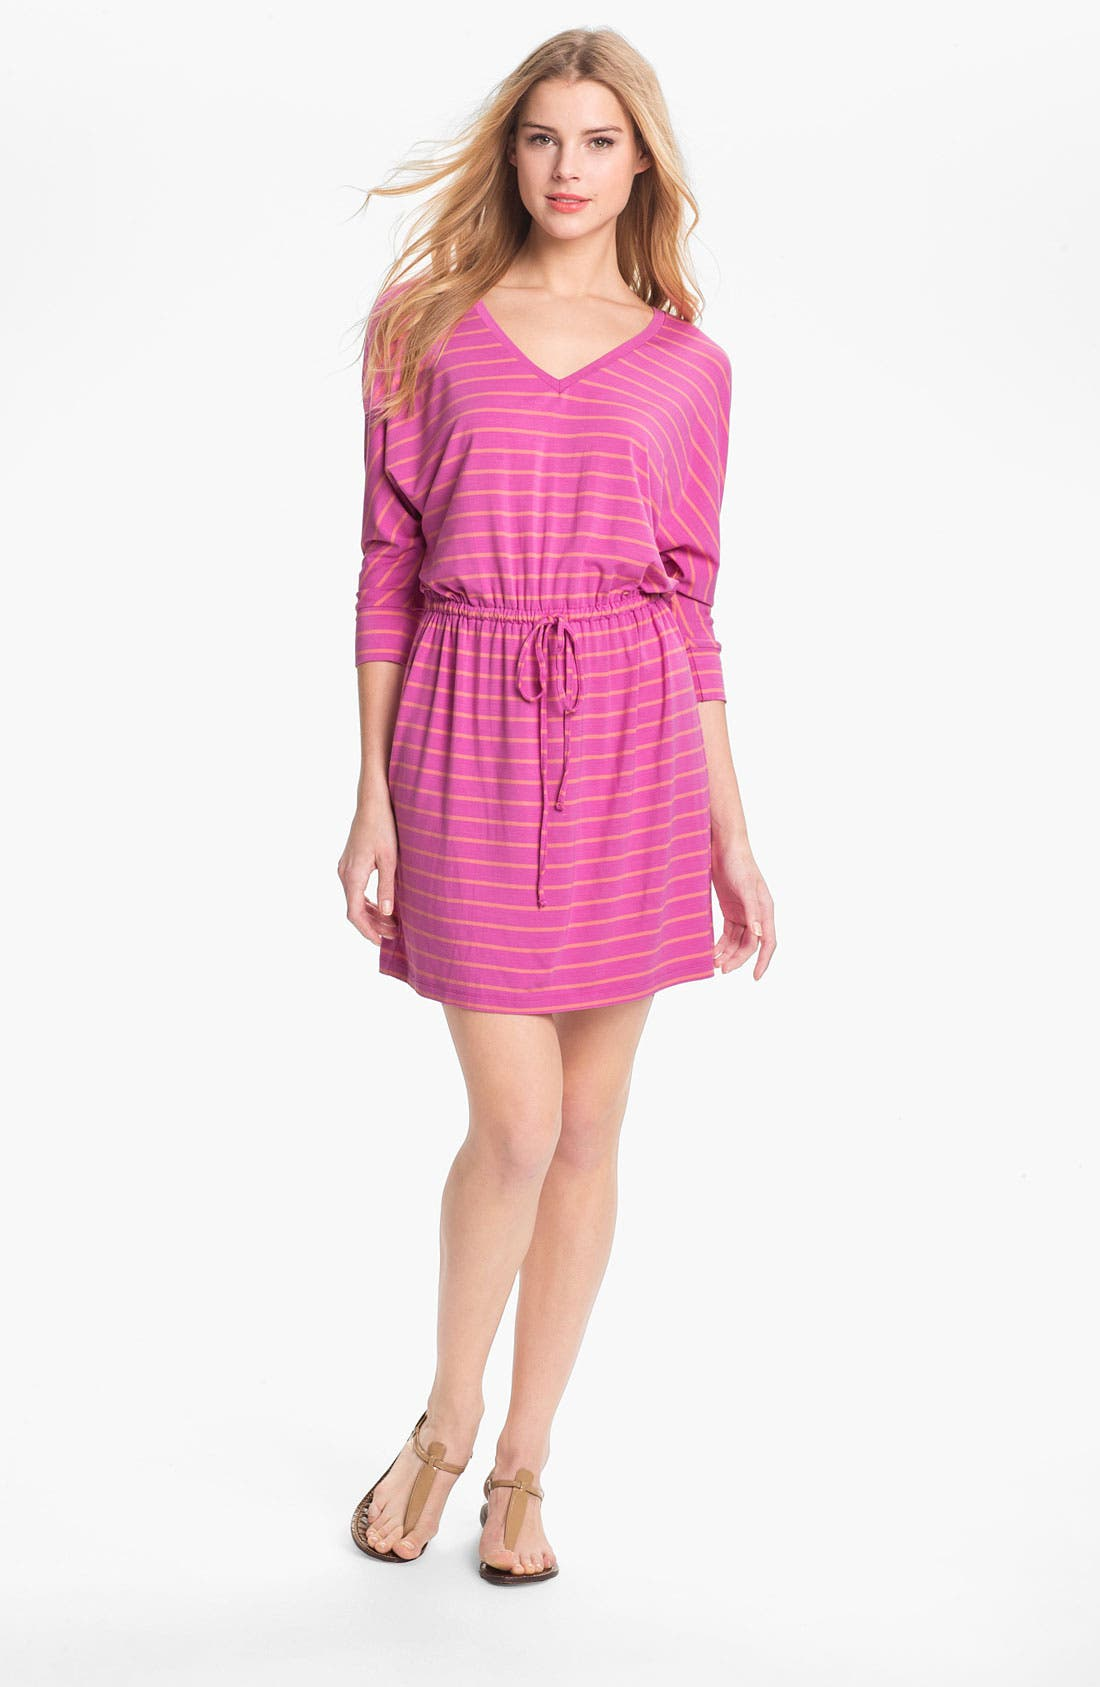 Main Image - Caslon Three Quarter Dolman Sleeve Knit Dress